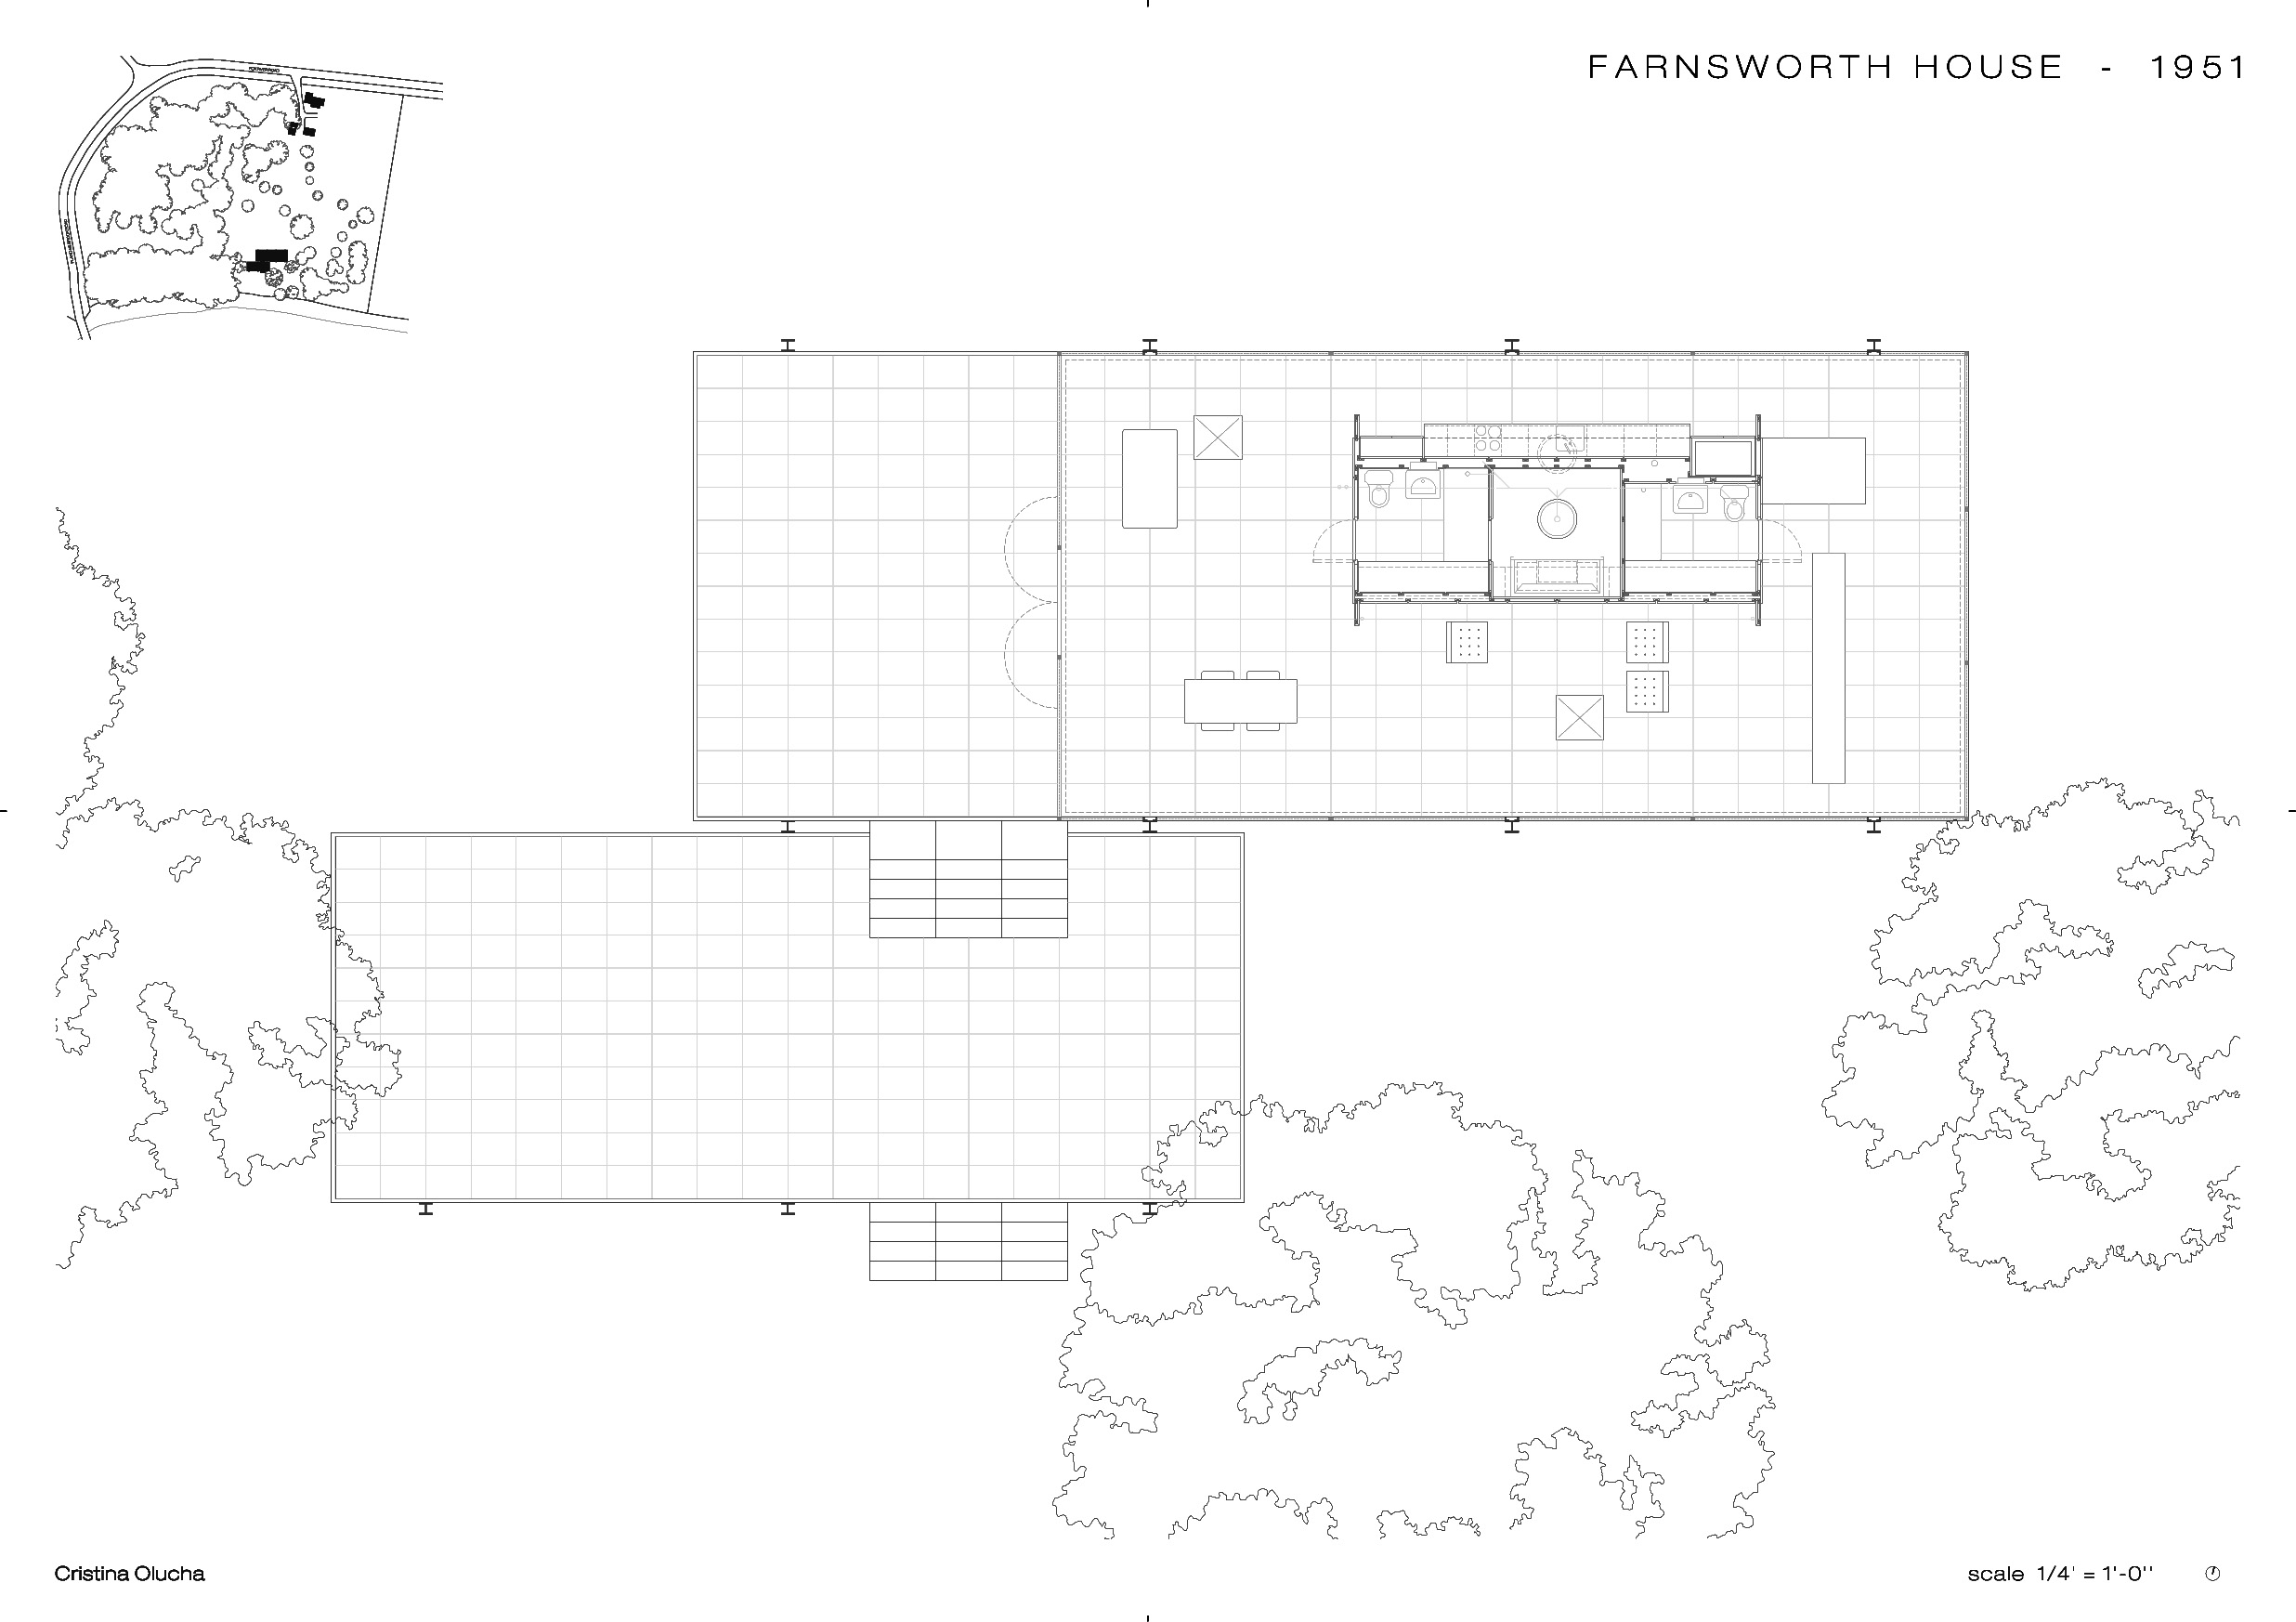 Mies van der rohe farnsworth house floor plan for Site plan dimensions